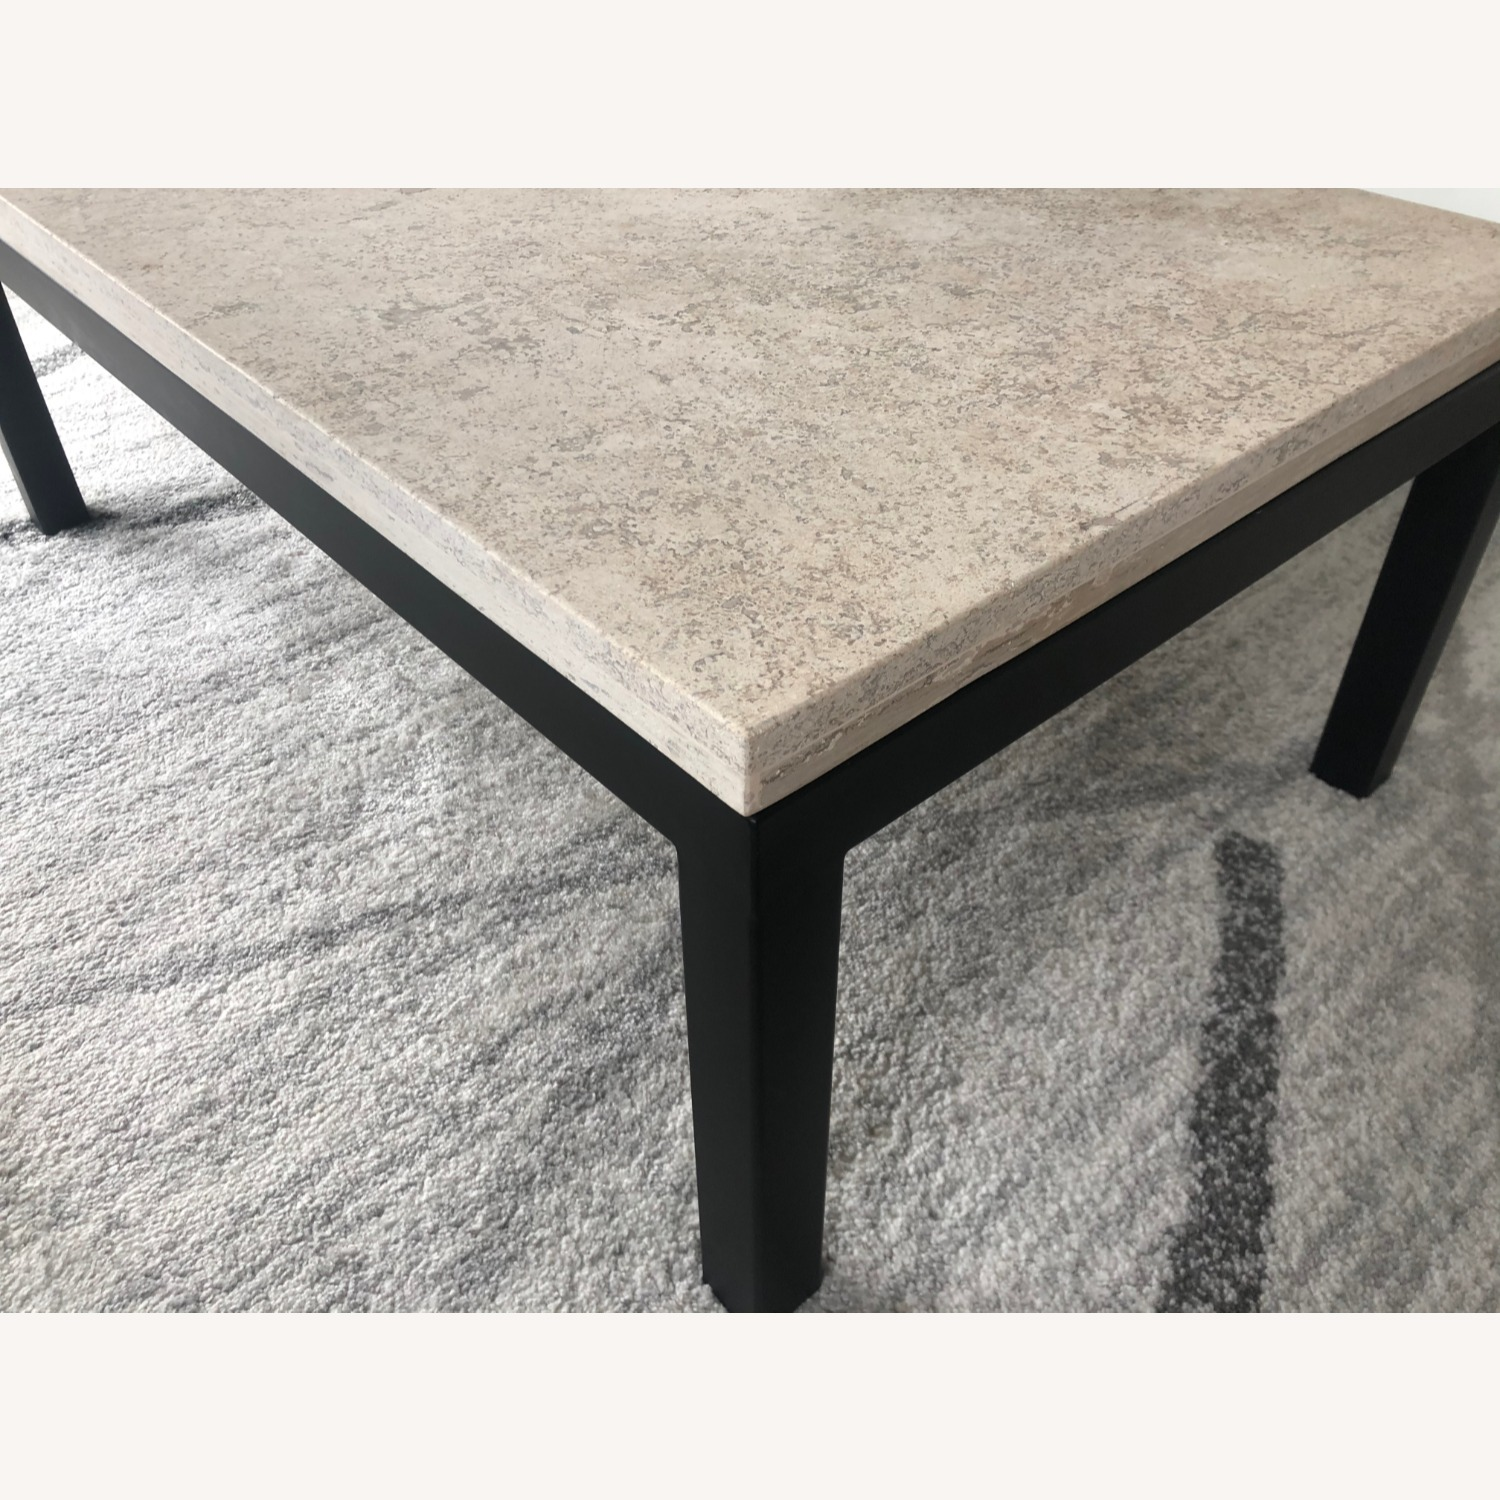 Crate & Barrel Natural Color Modern Coffee Table - image-3